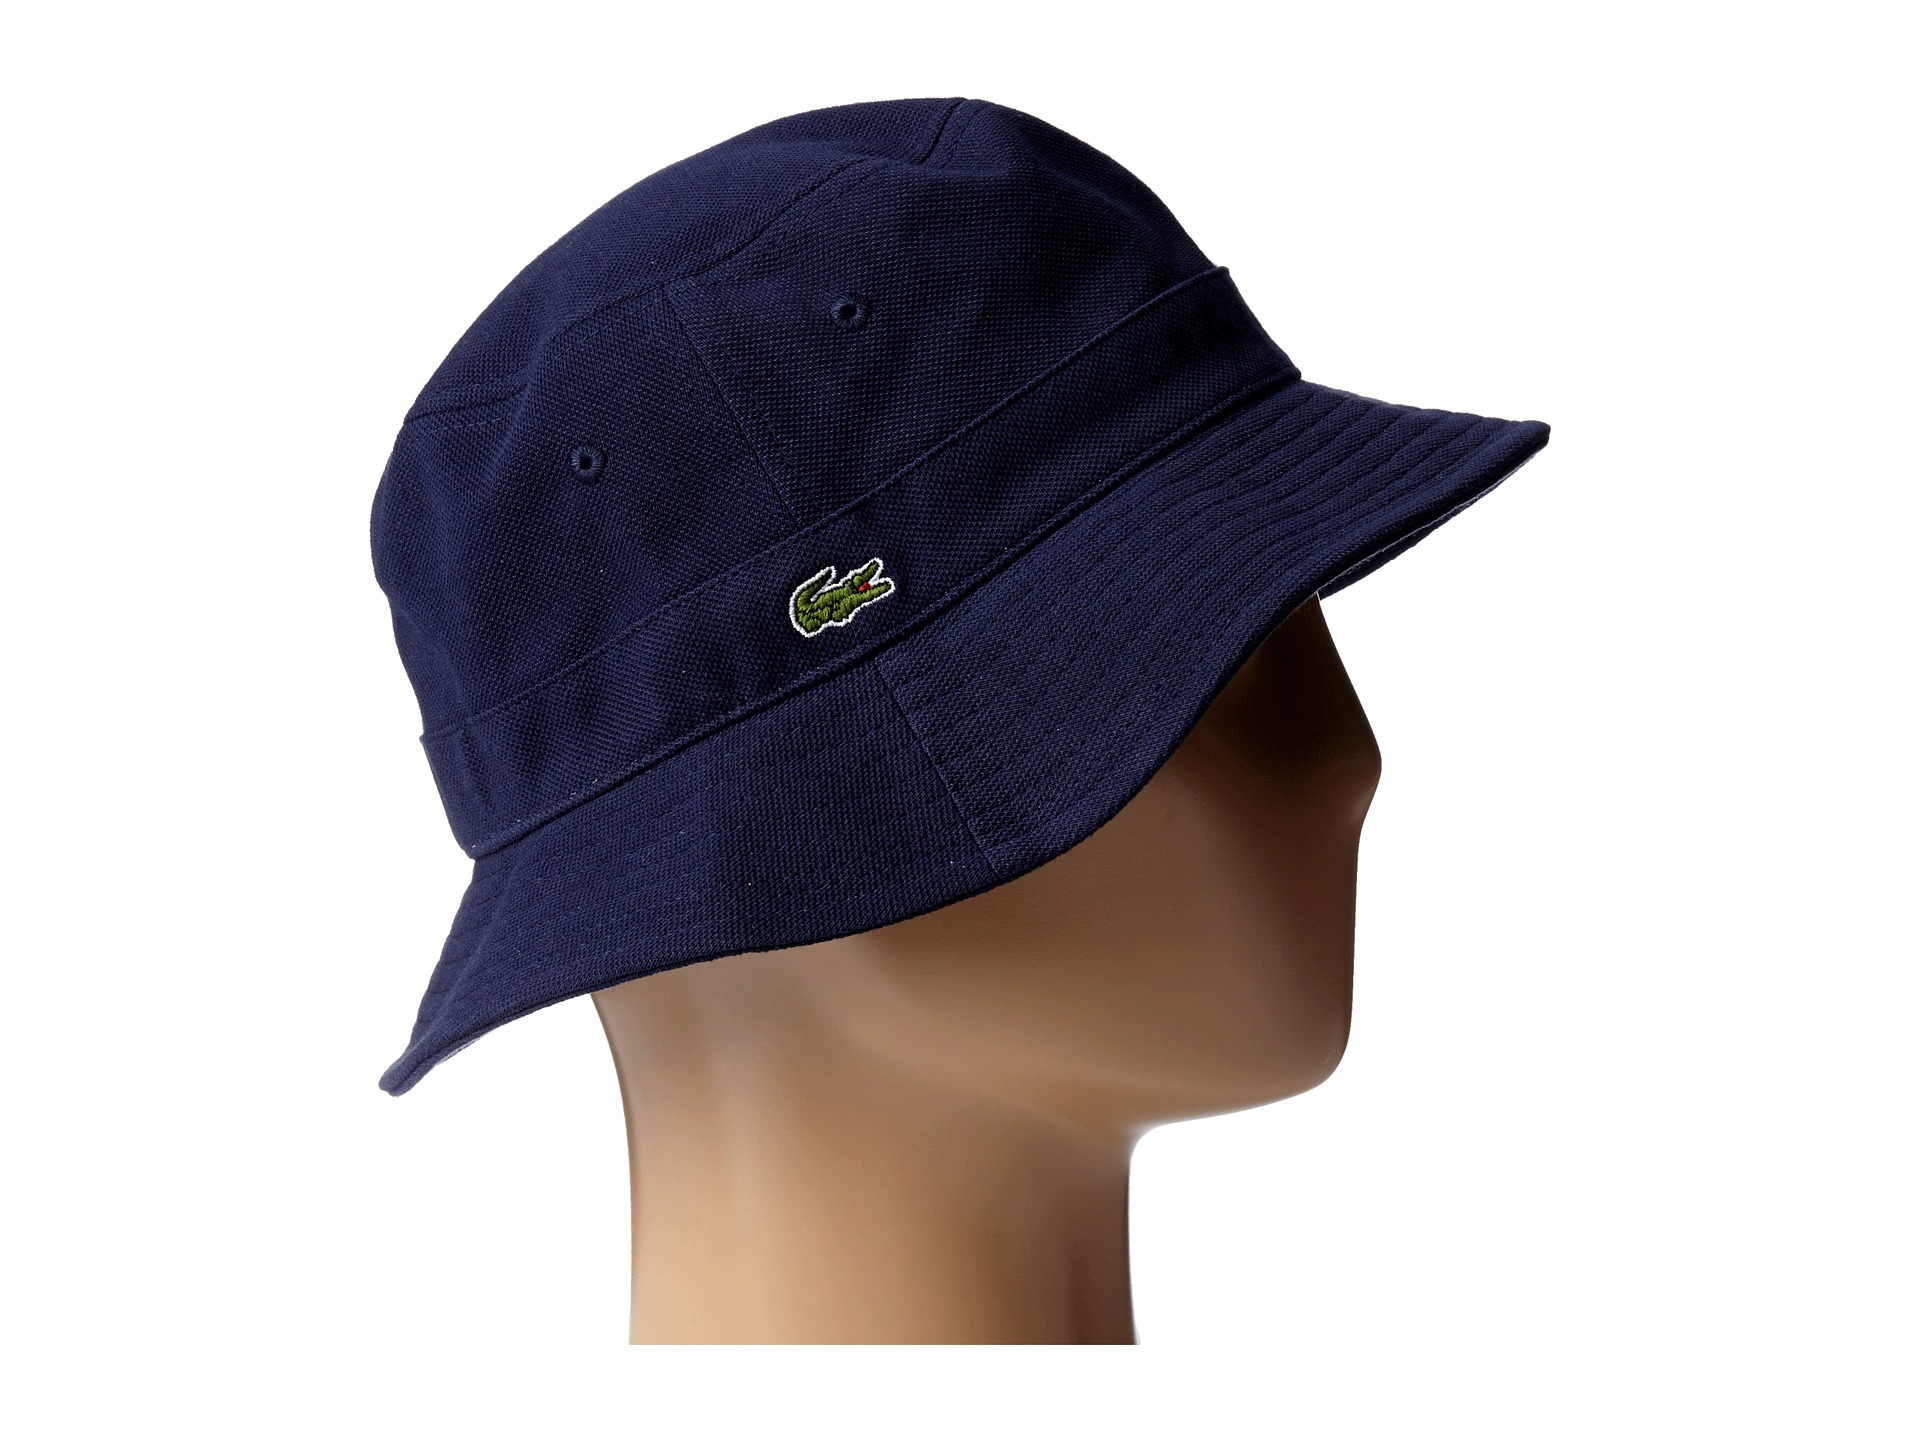 Lyst - Lacoste Bucket Cap in Blue for Men a23ea65b257e